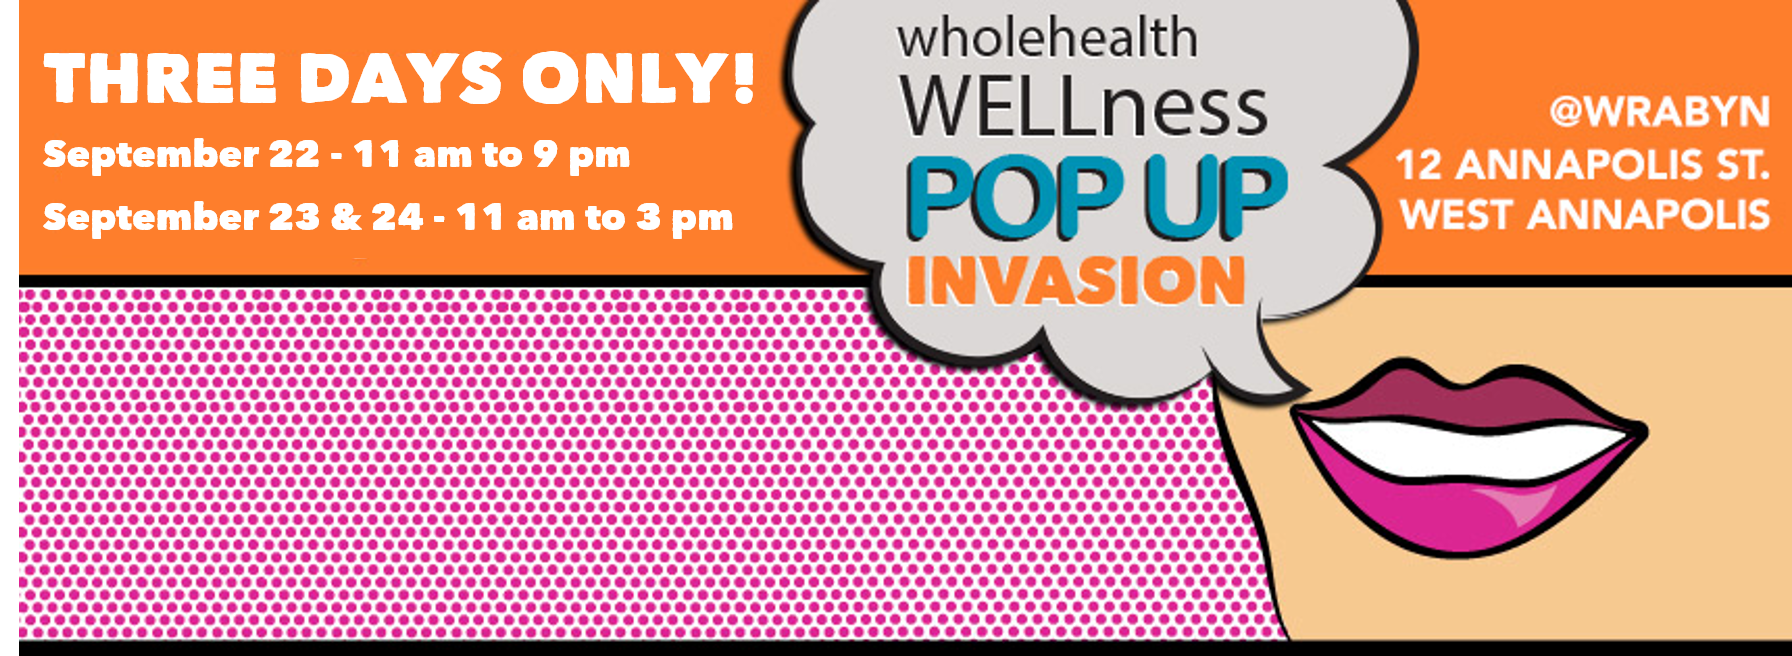 WRABYN WELLness Pop Up